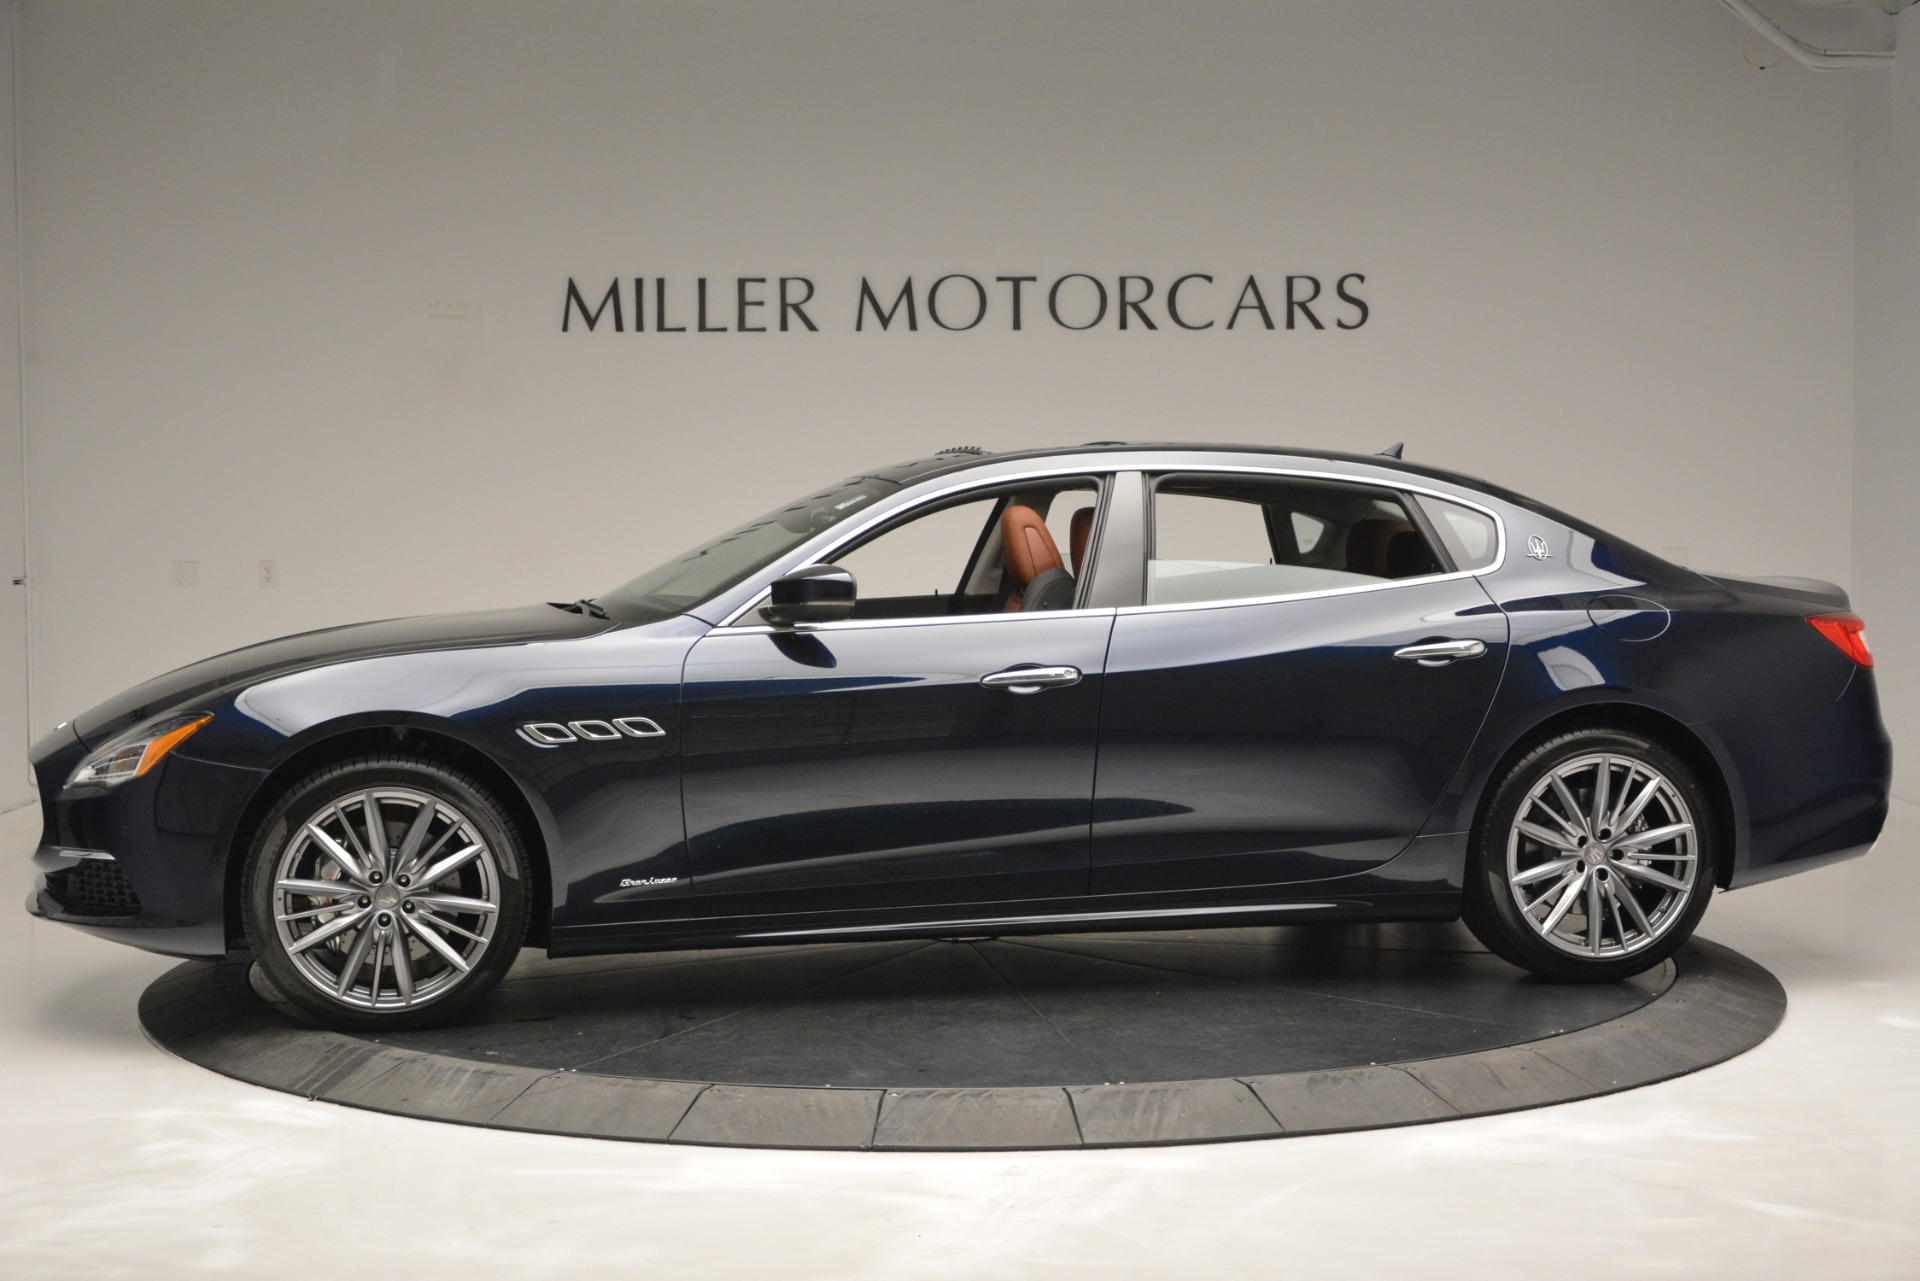 New 2019 Maserati Quattroporte S Q4 GranLusso Edizione Nobile For Sale In Greenwich, CT 2898_p4